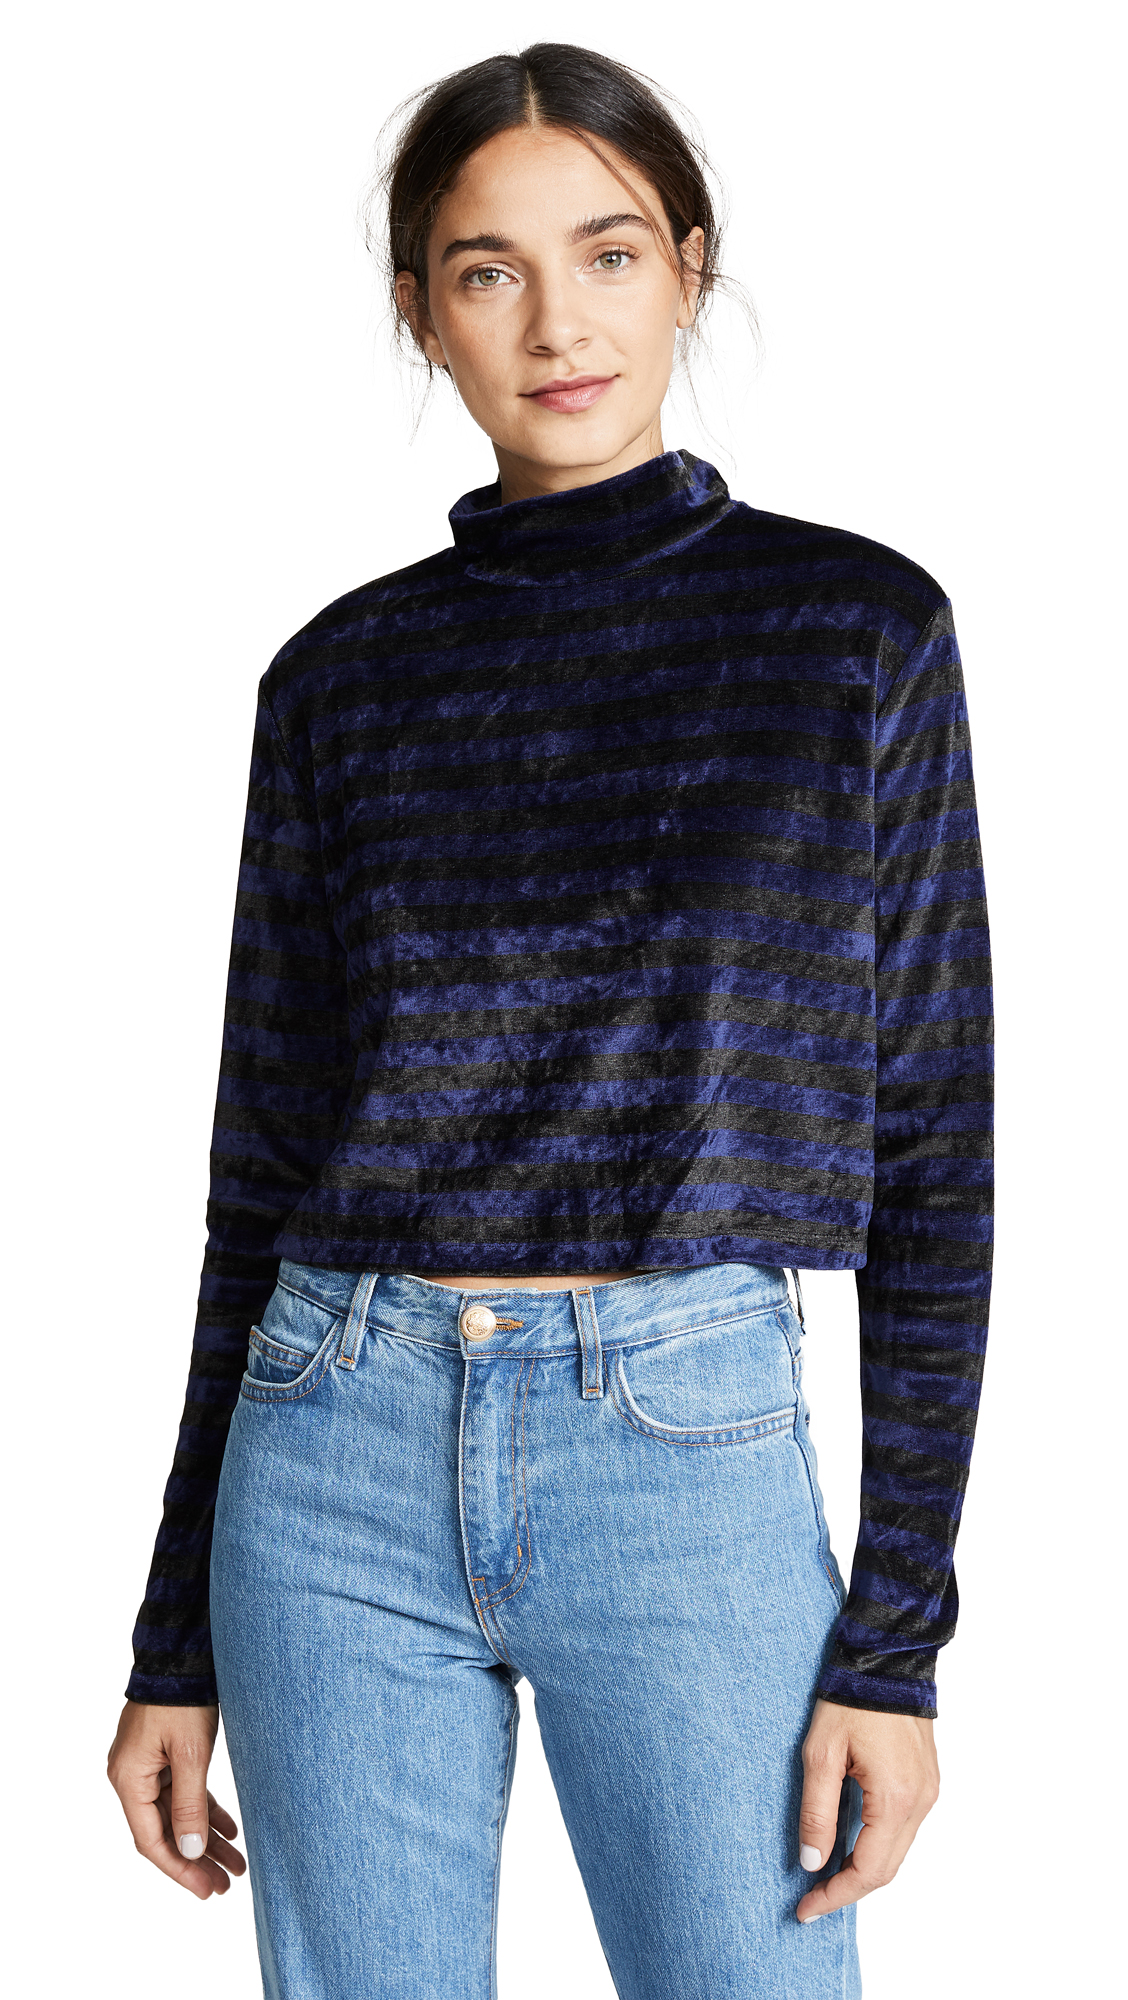 ei8htdreams Striped Velour High Neck Crop Top In Charcoal/Navy